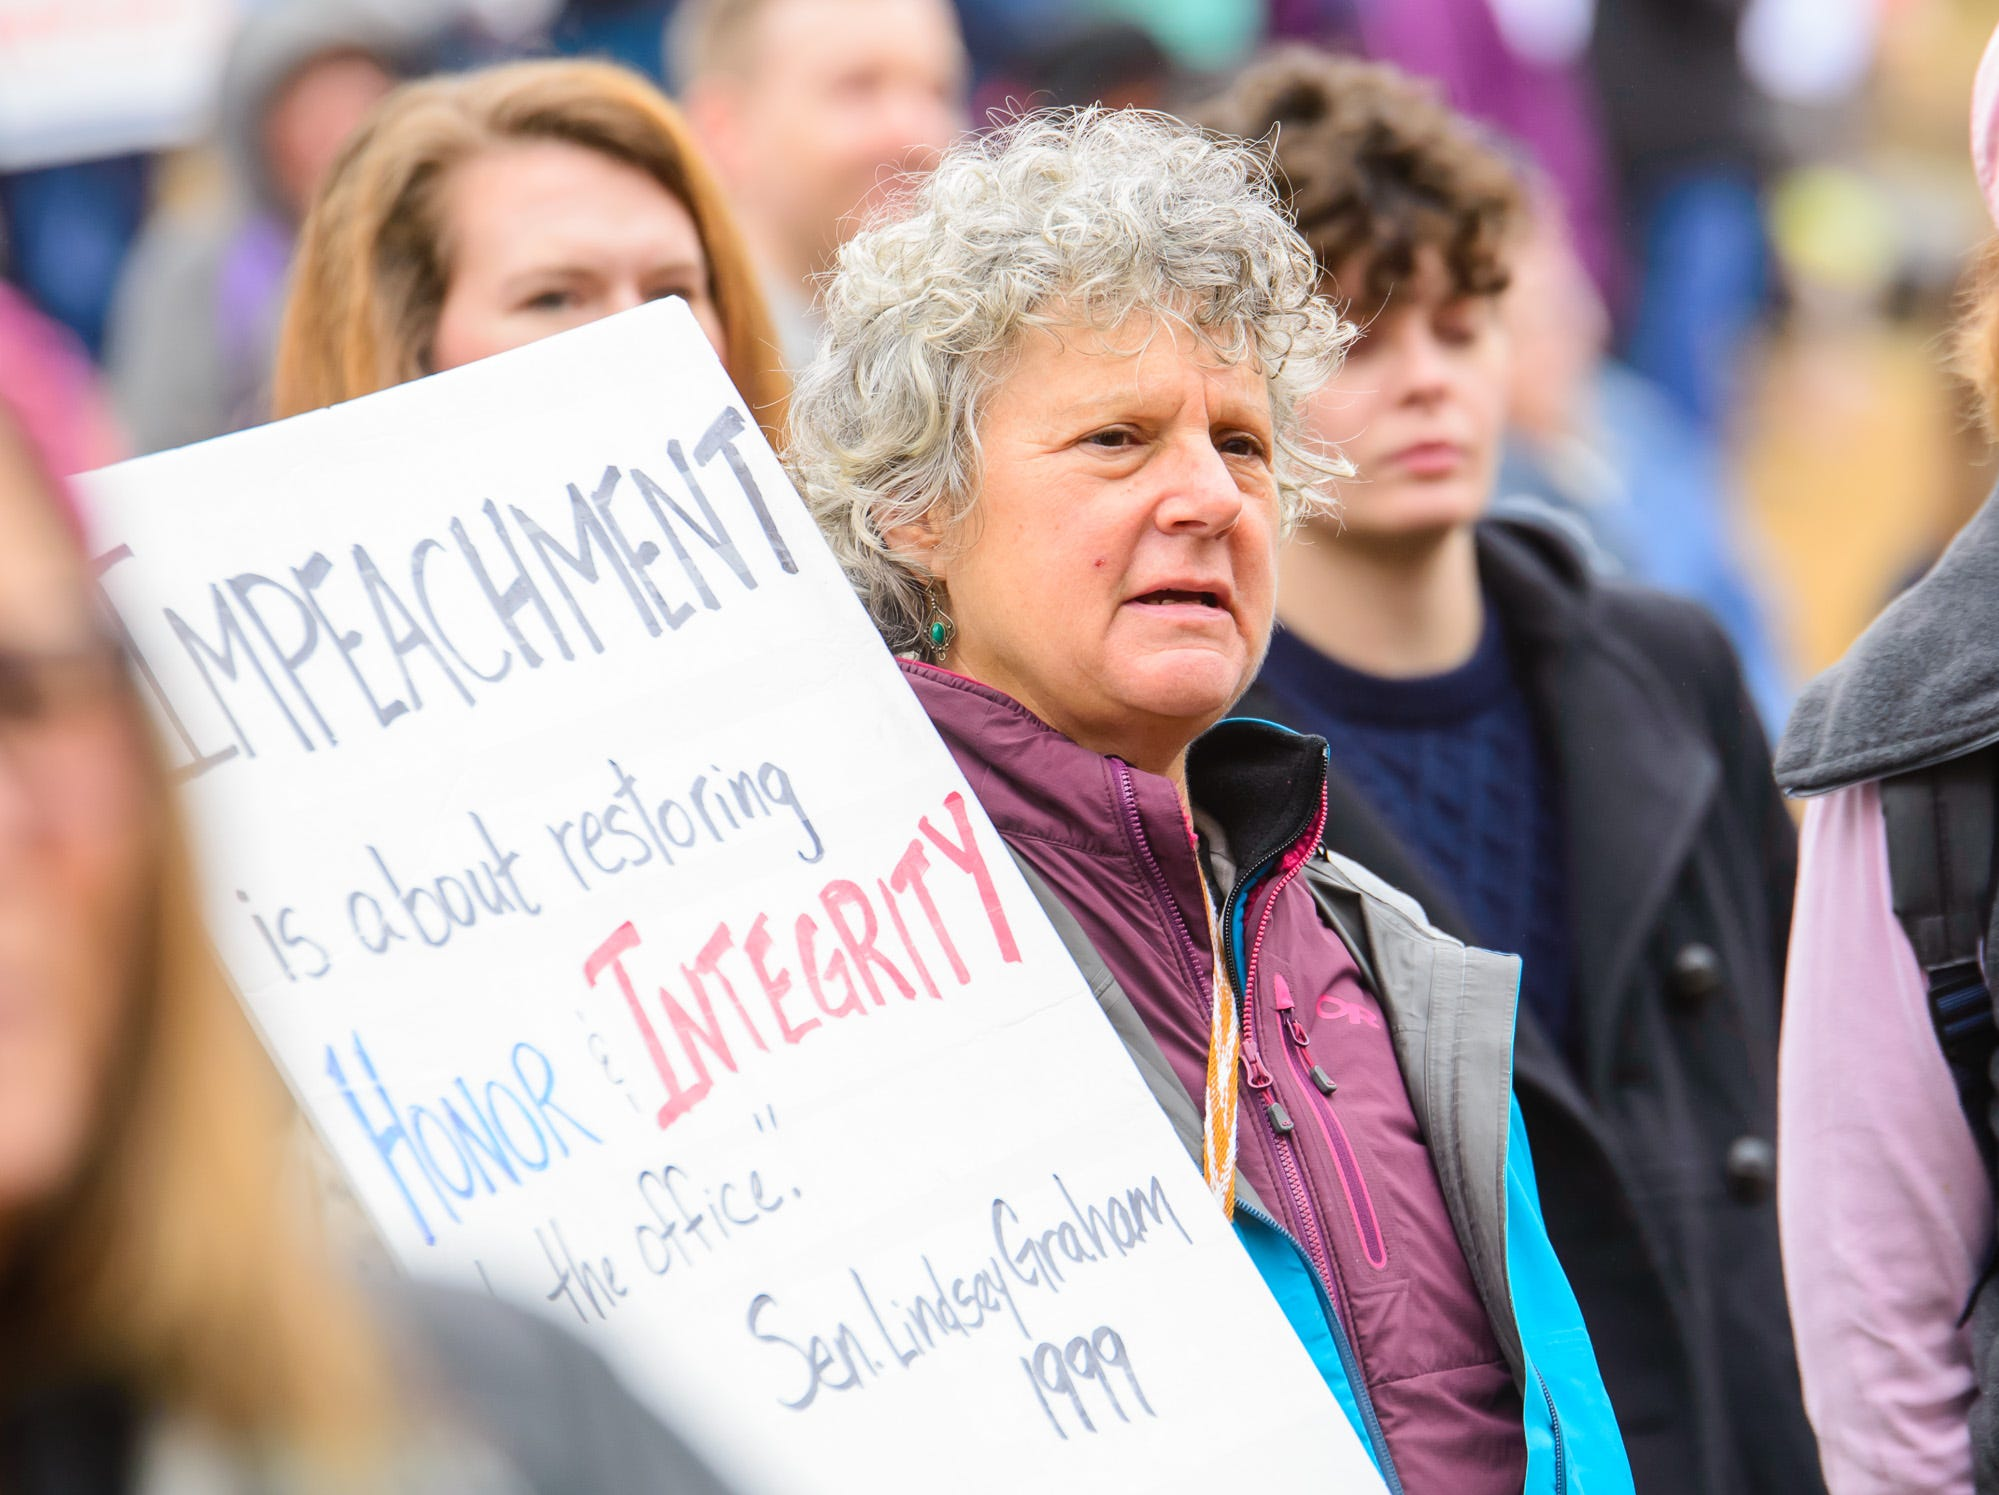 People gather in downtown Greenville for the 2019 Greenville Women's March held in Falls Park on Saturday, January 19, 2019.